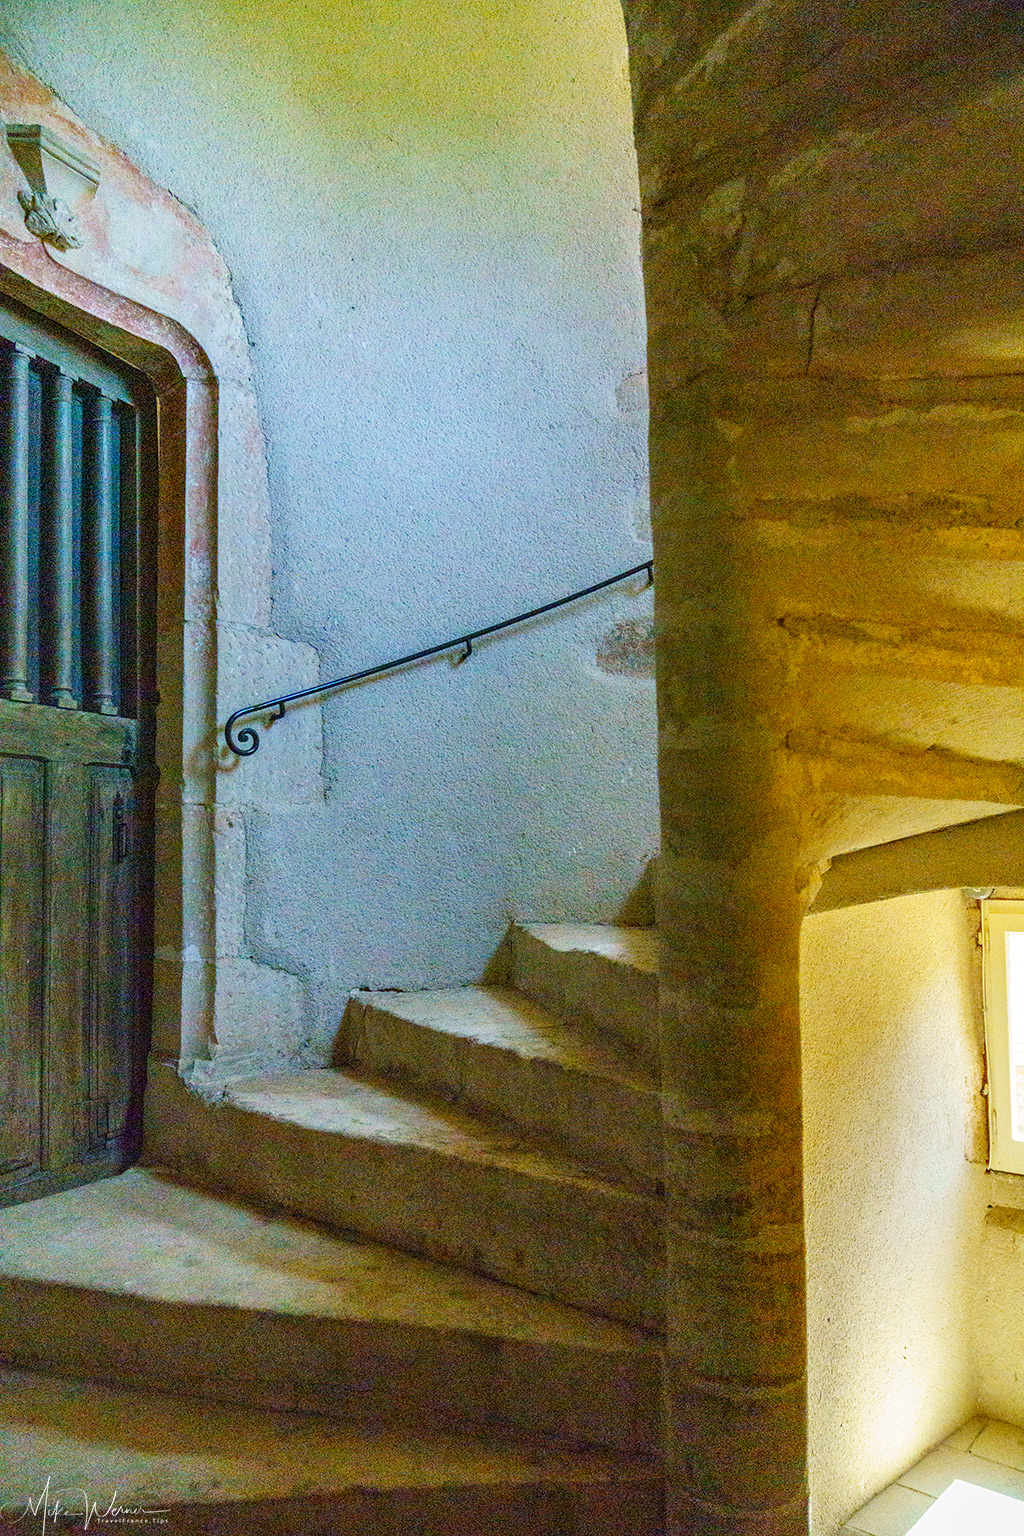 Stairs inside the round turret of the Balleure castle